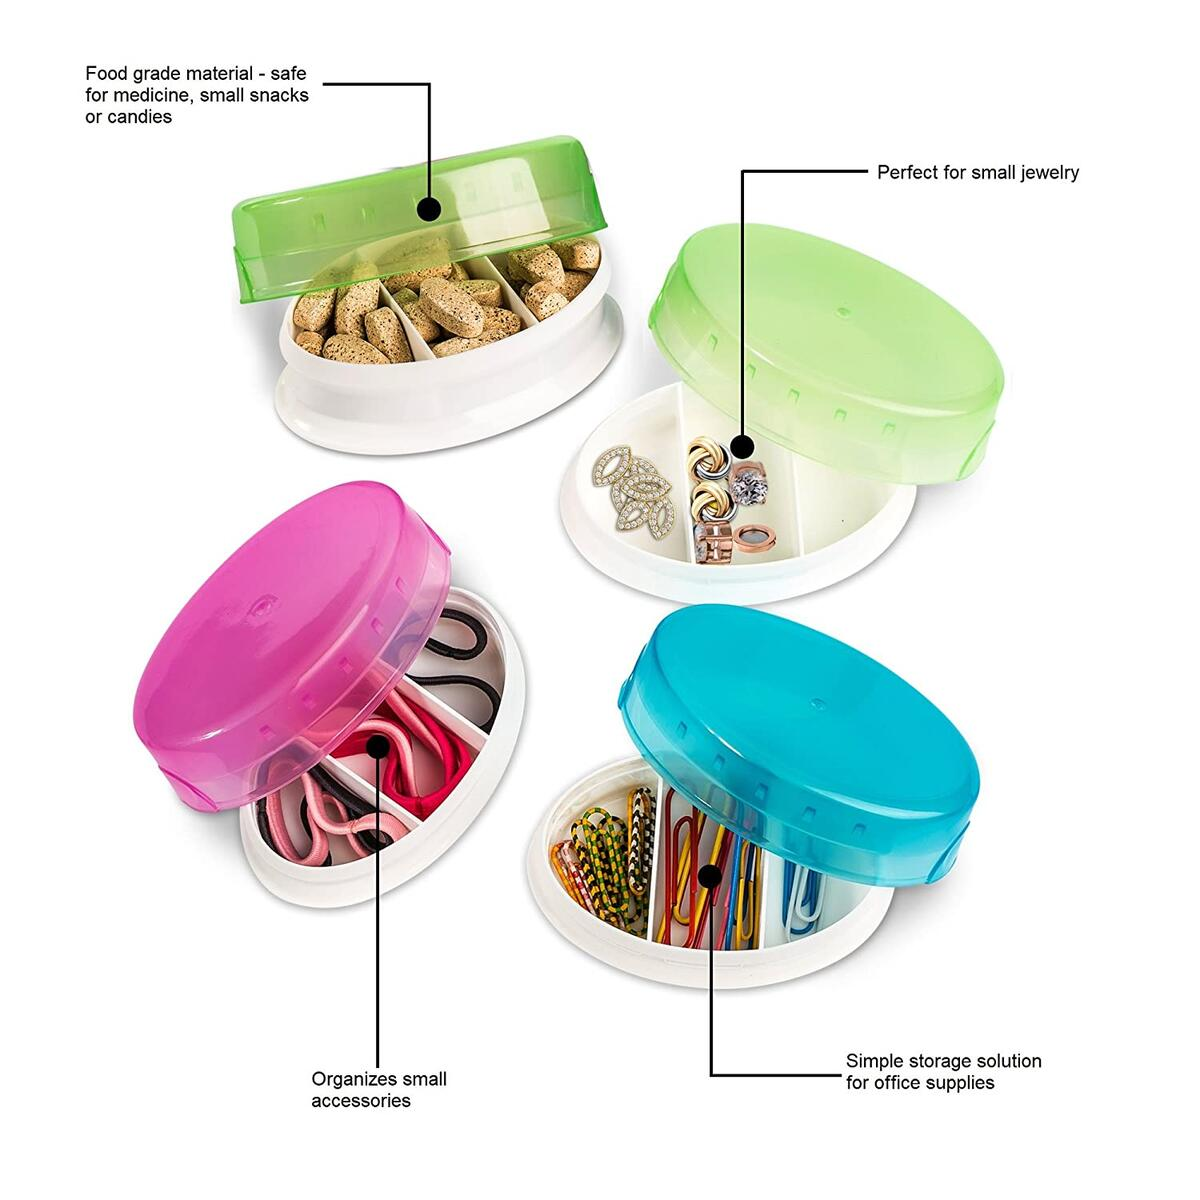 Travel Containers - Portable and Lightweight Medicine Containers with Convenient Compartments, Perfect Pill Holder for Your Travel and Daily Storage